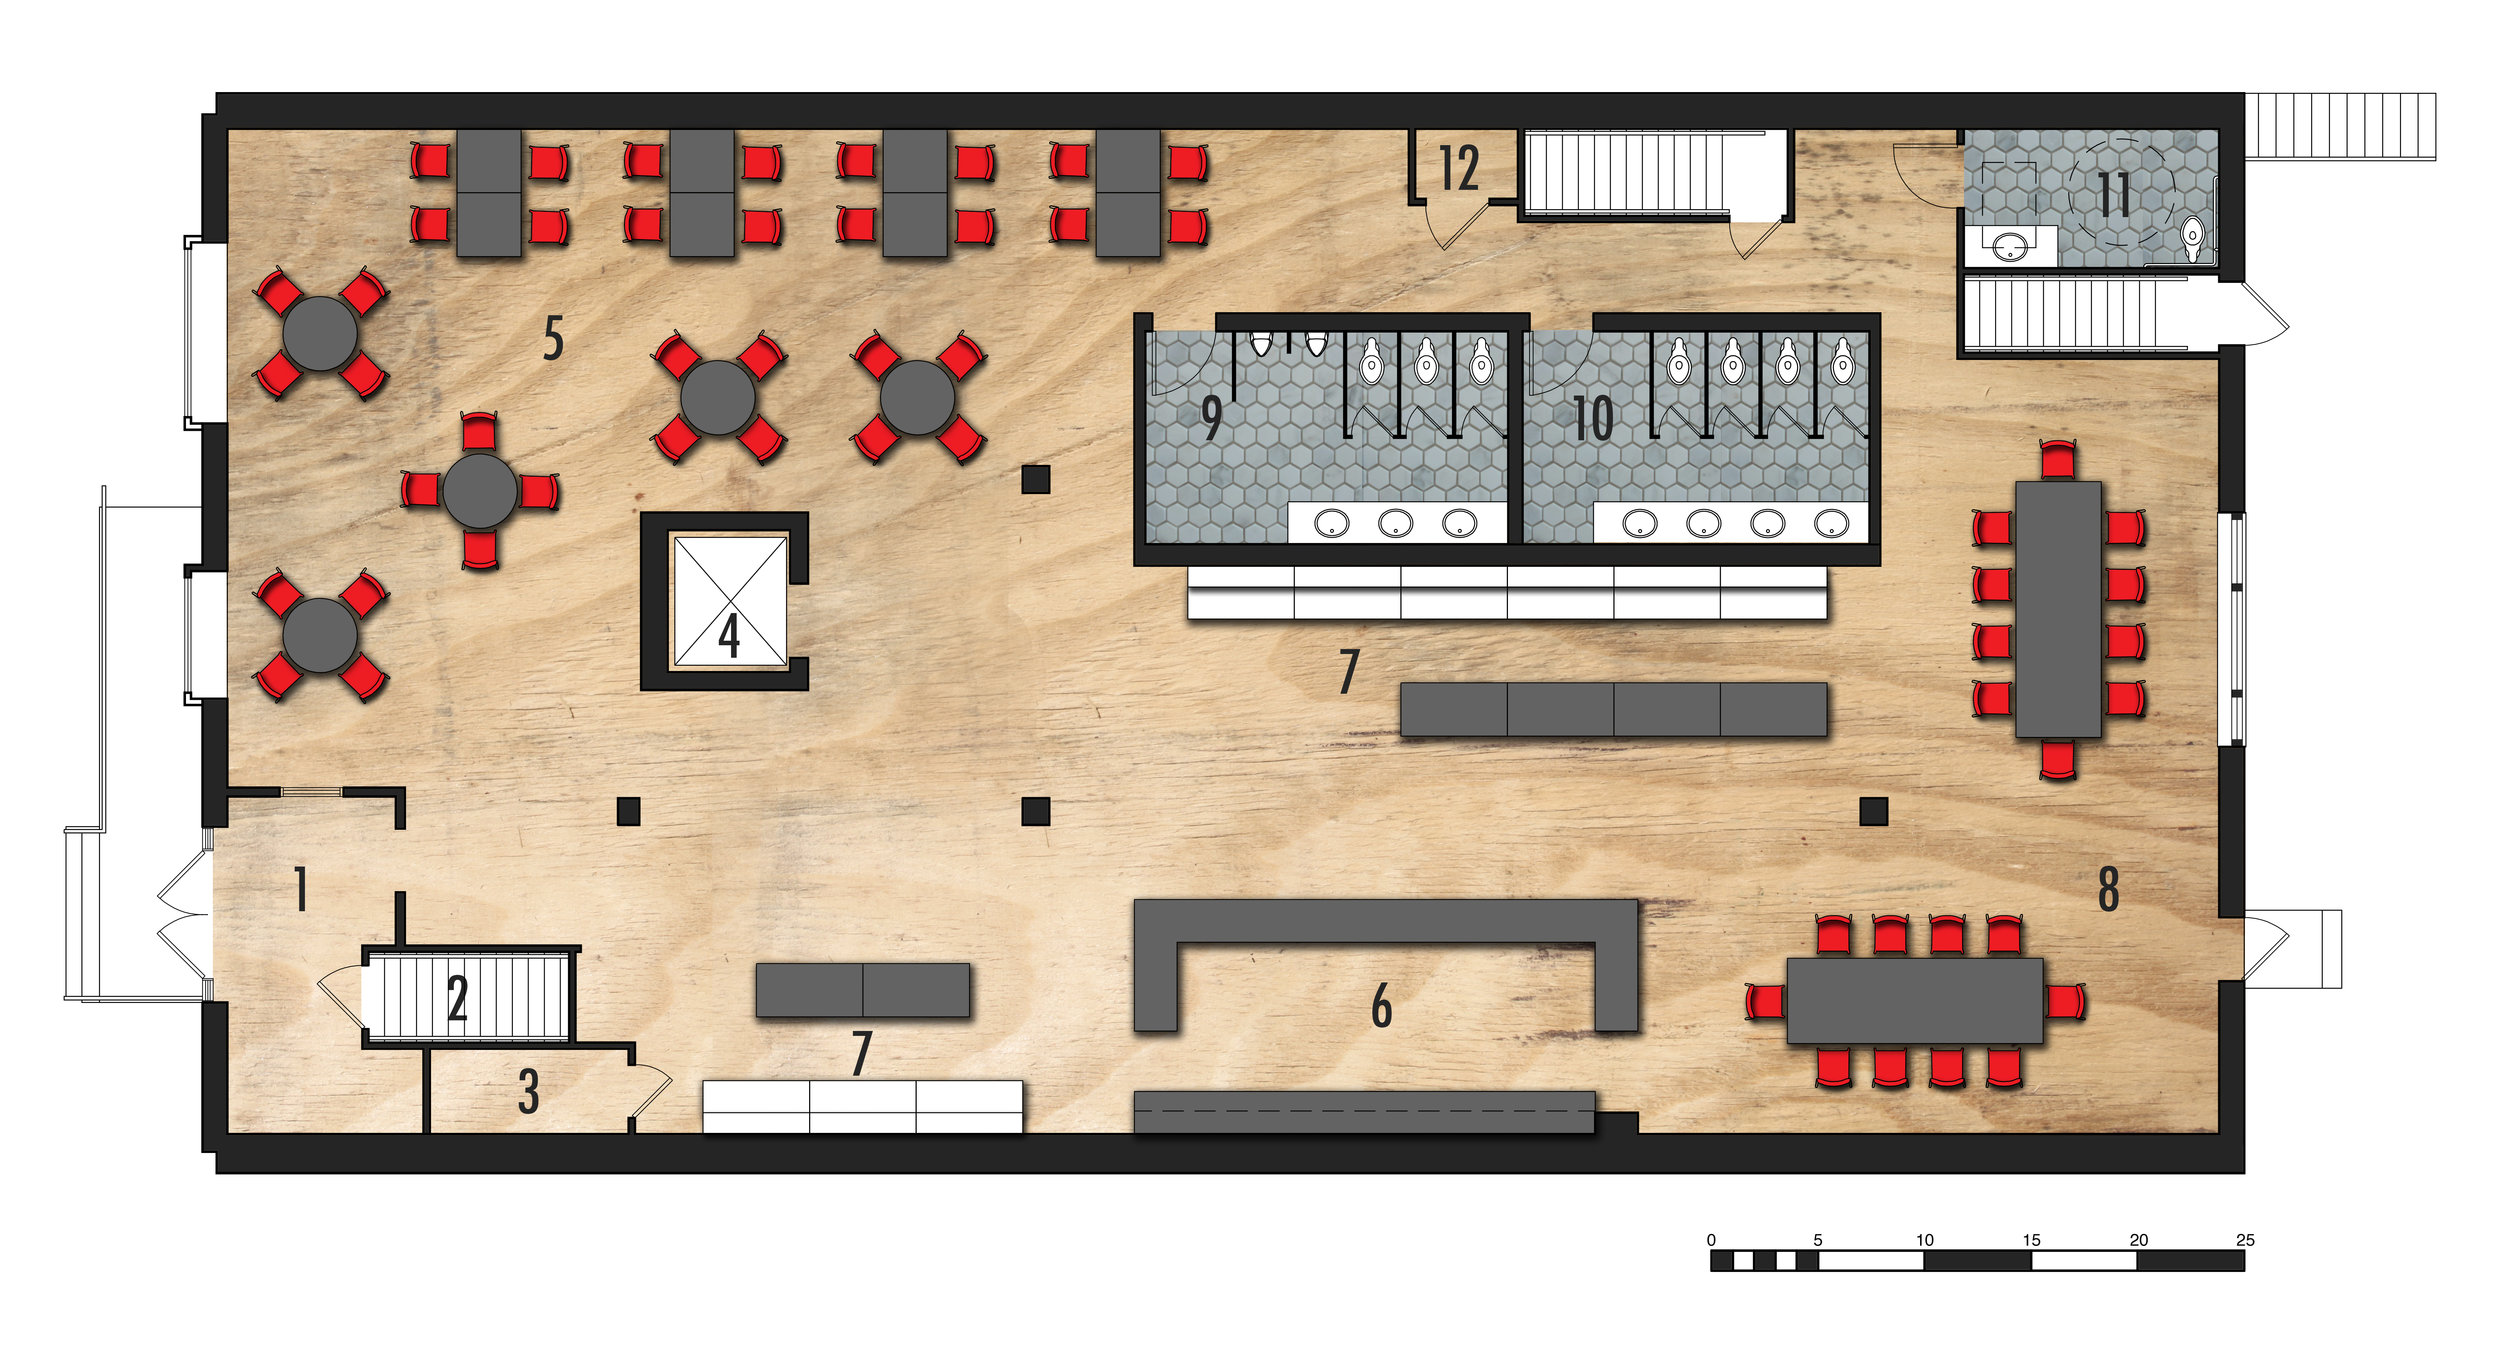 Entry Level Floor Plan   1.Entry 2.Existing Stair to Second Level 3.Storage 4.Existing Elevator5.Cafe Seating 6.Ordering and Sales Counter 7.Grocery  8.Communal Cafe Seating 9.Men's Restroom 10.Women's Restroom 11.ADA Restroom 12.Existing HVAC